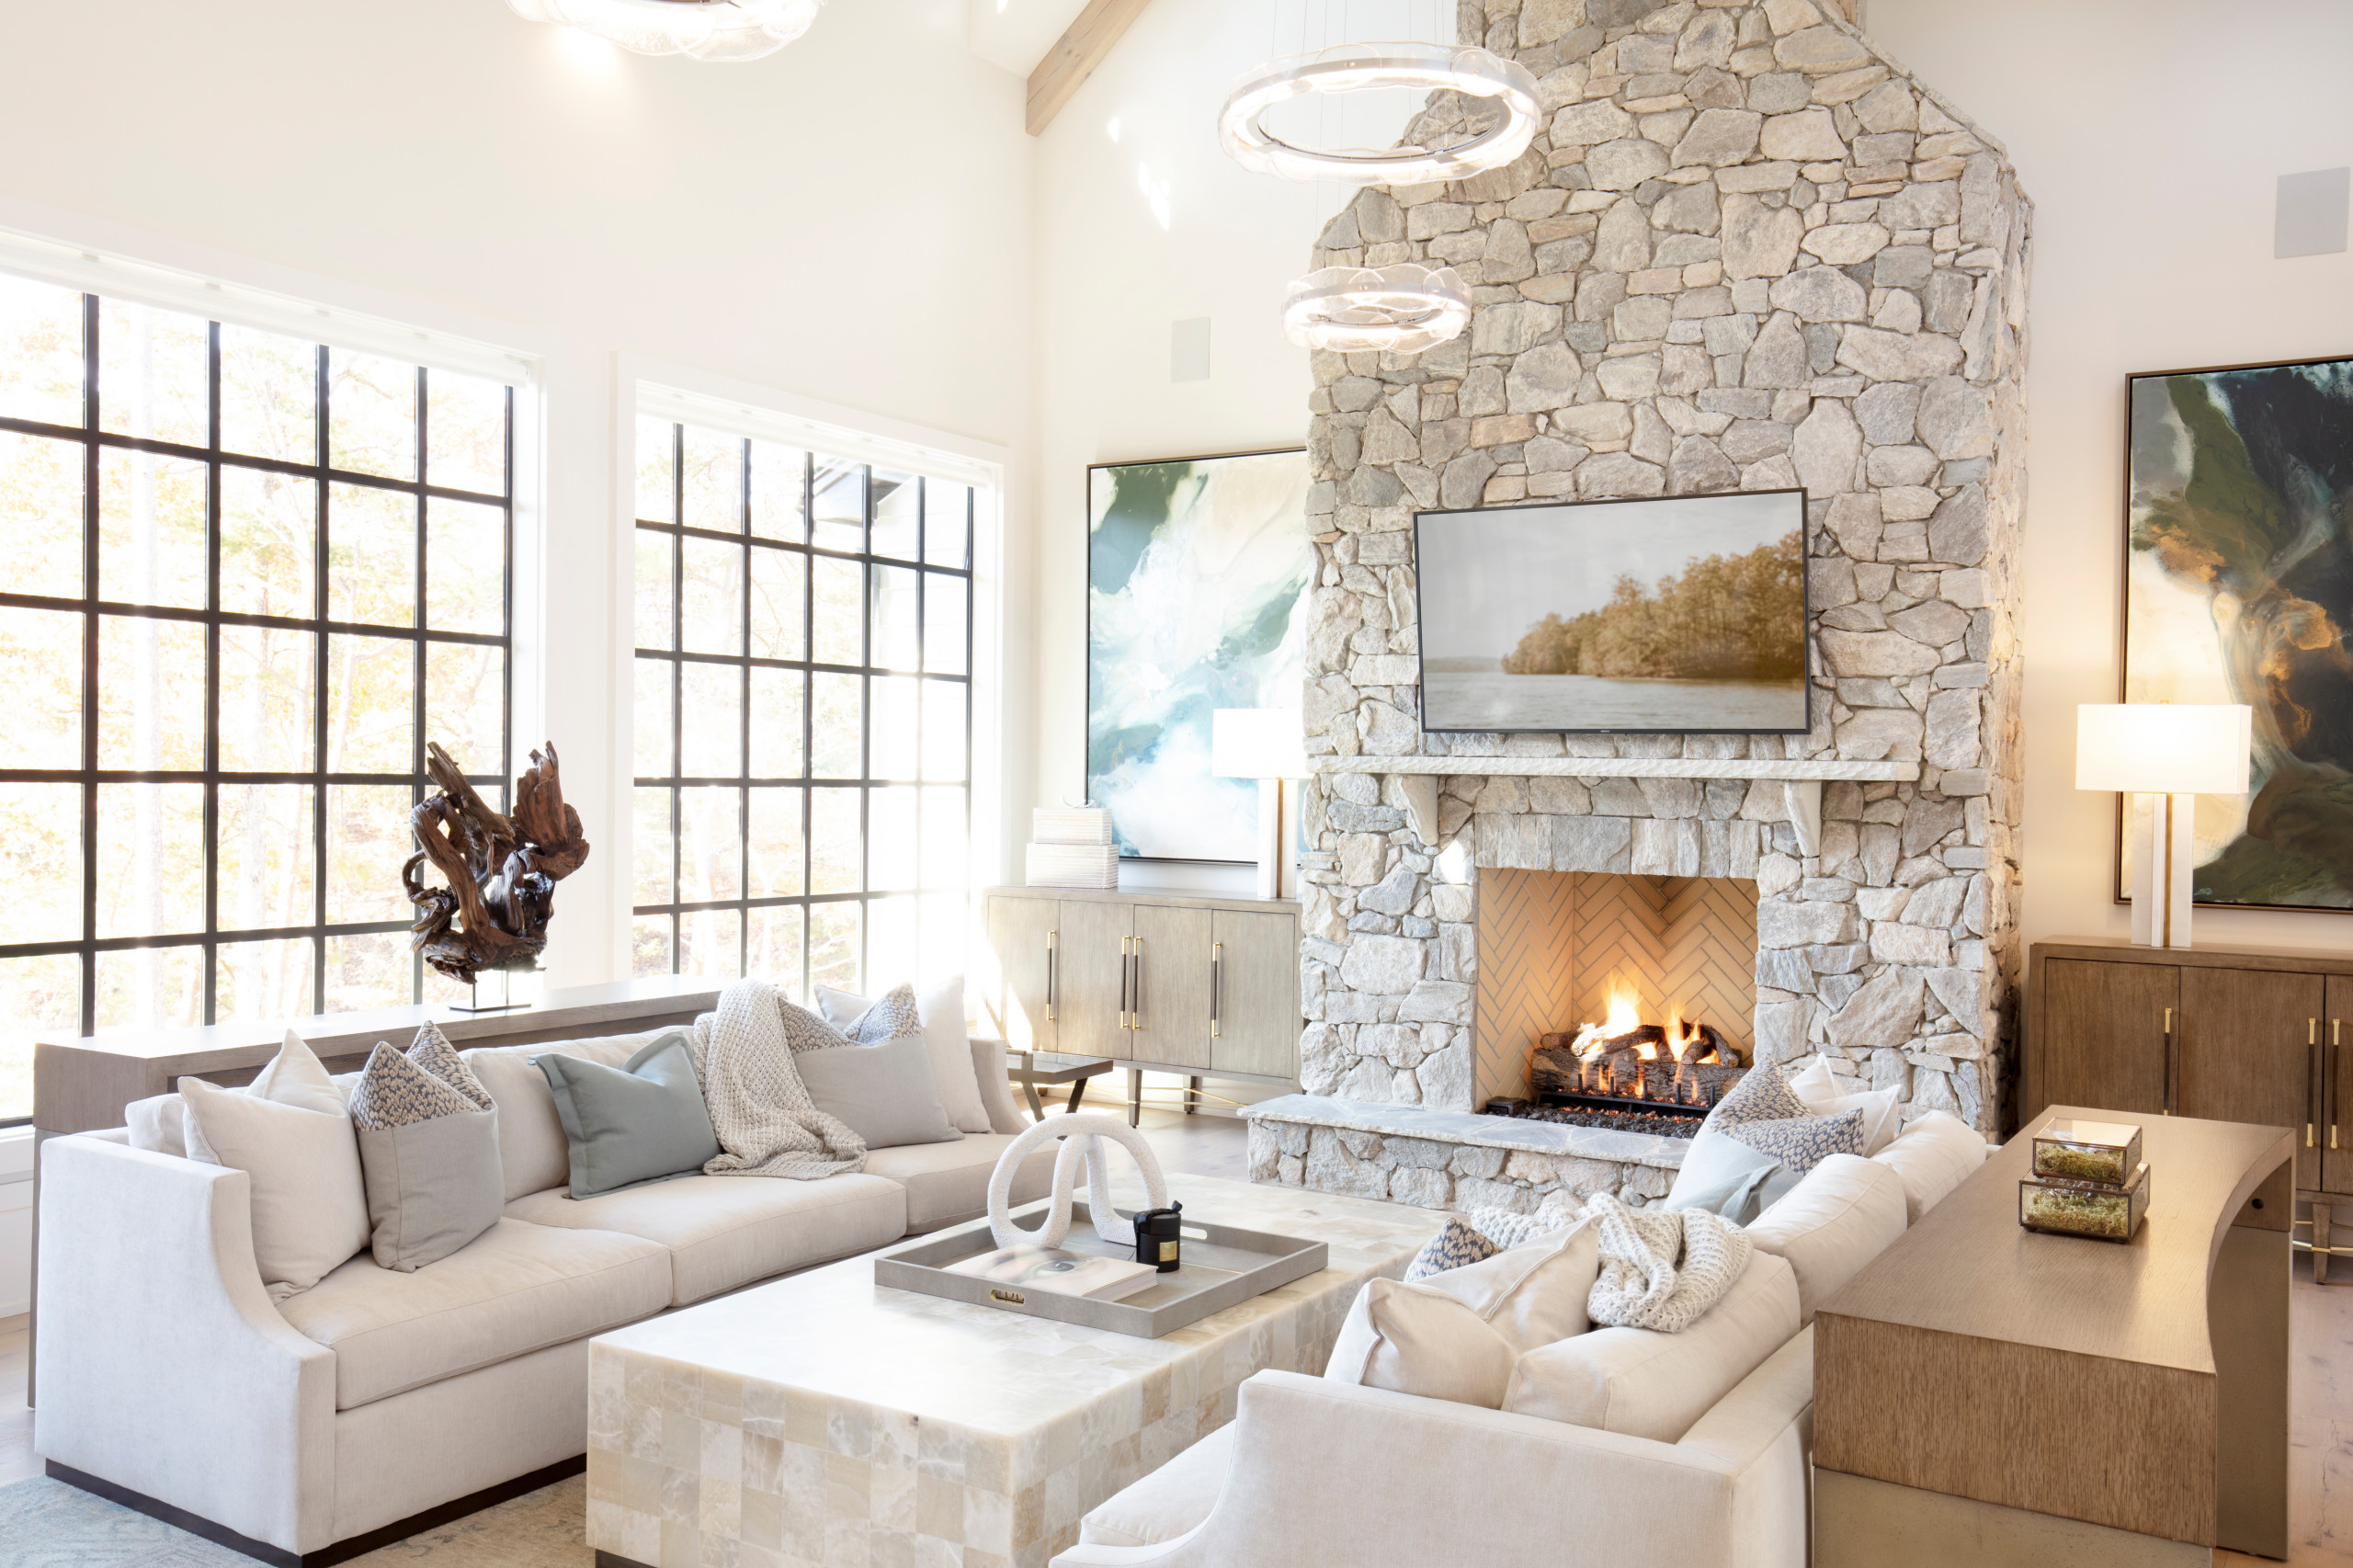 75 Beautiful Family Room With A Standard Fireplace Pictures Ideas May 2021 Houzz